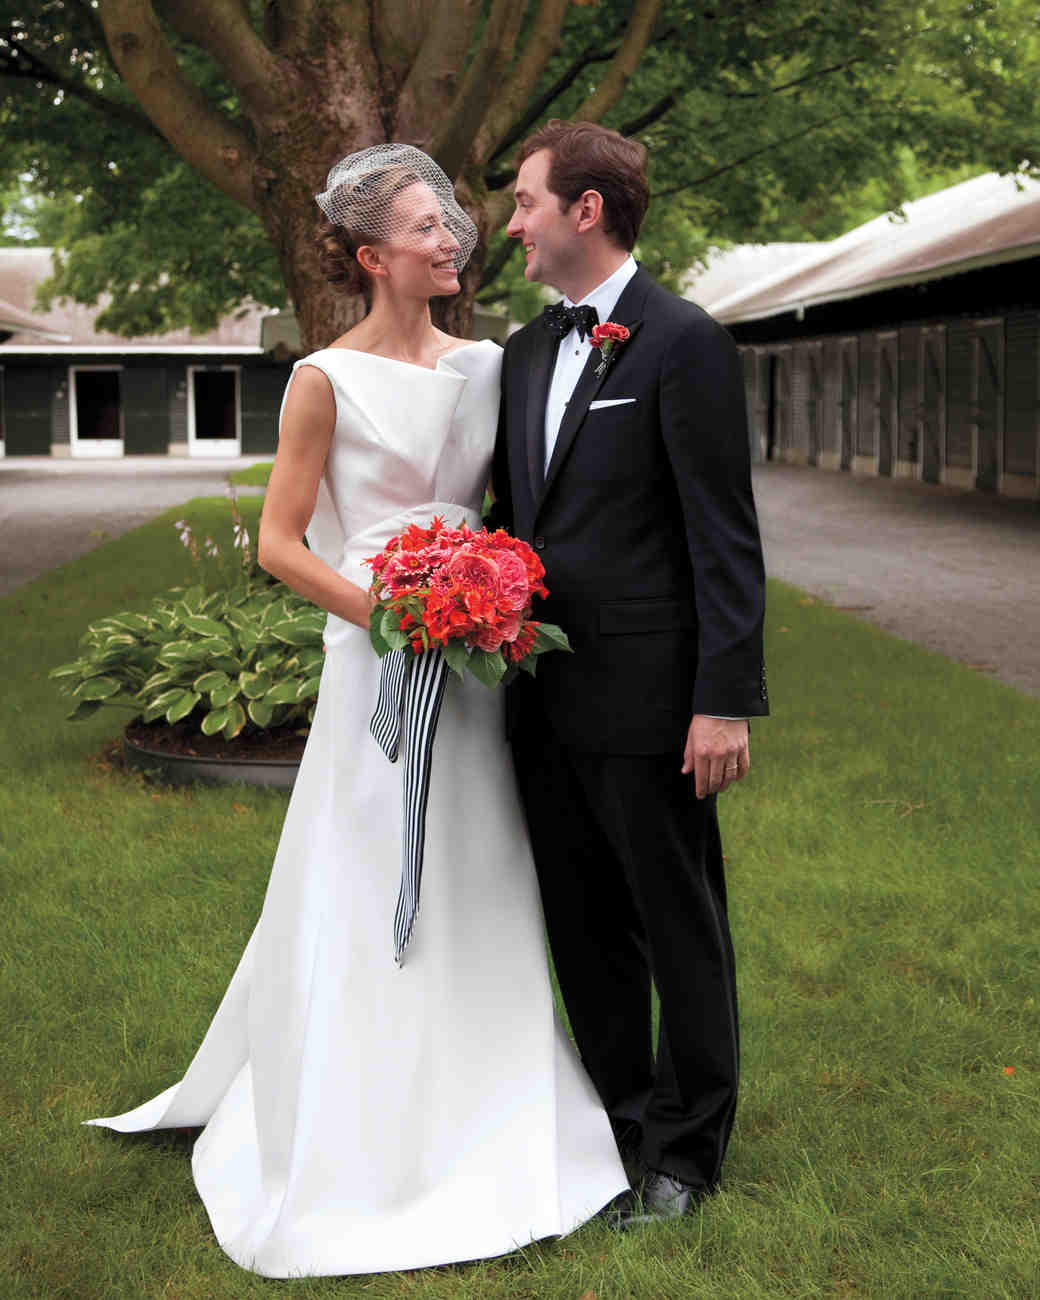 A Black-and-White Whimsical Wedding In Saratoga Springs